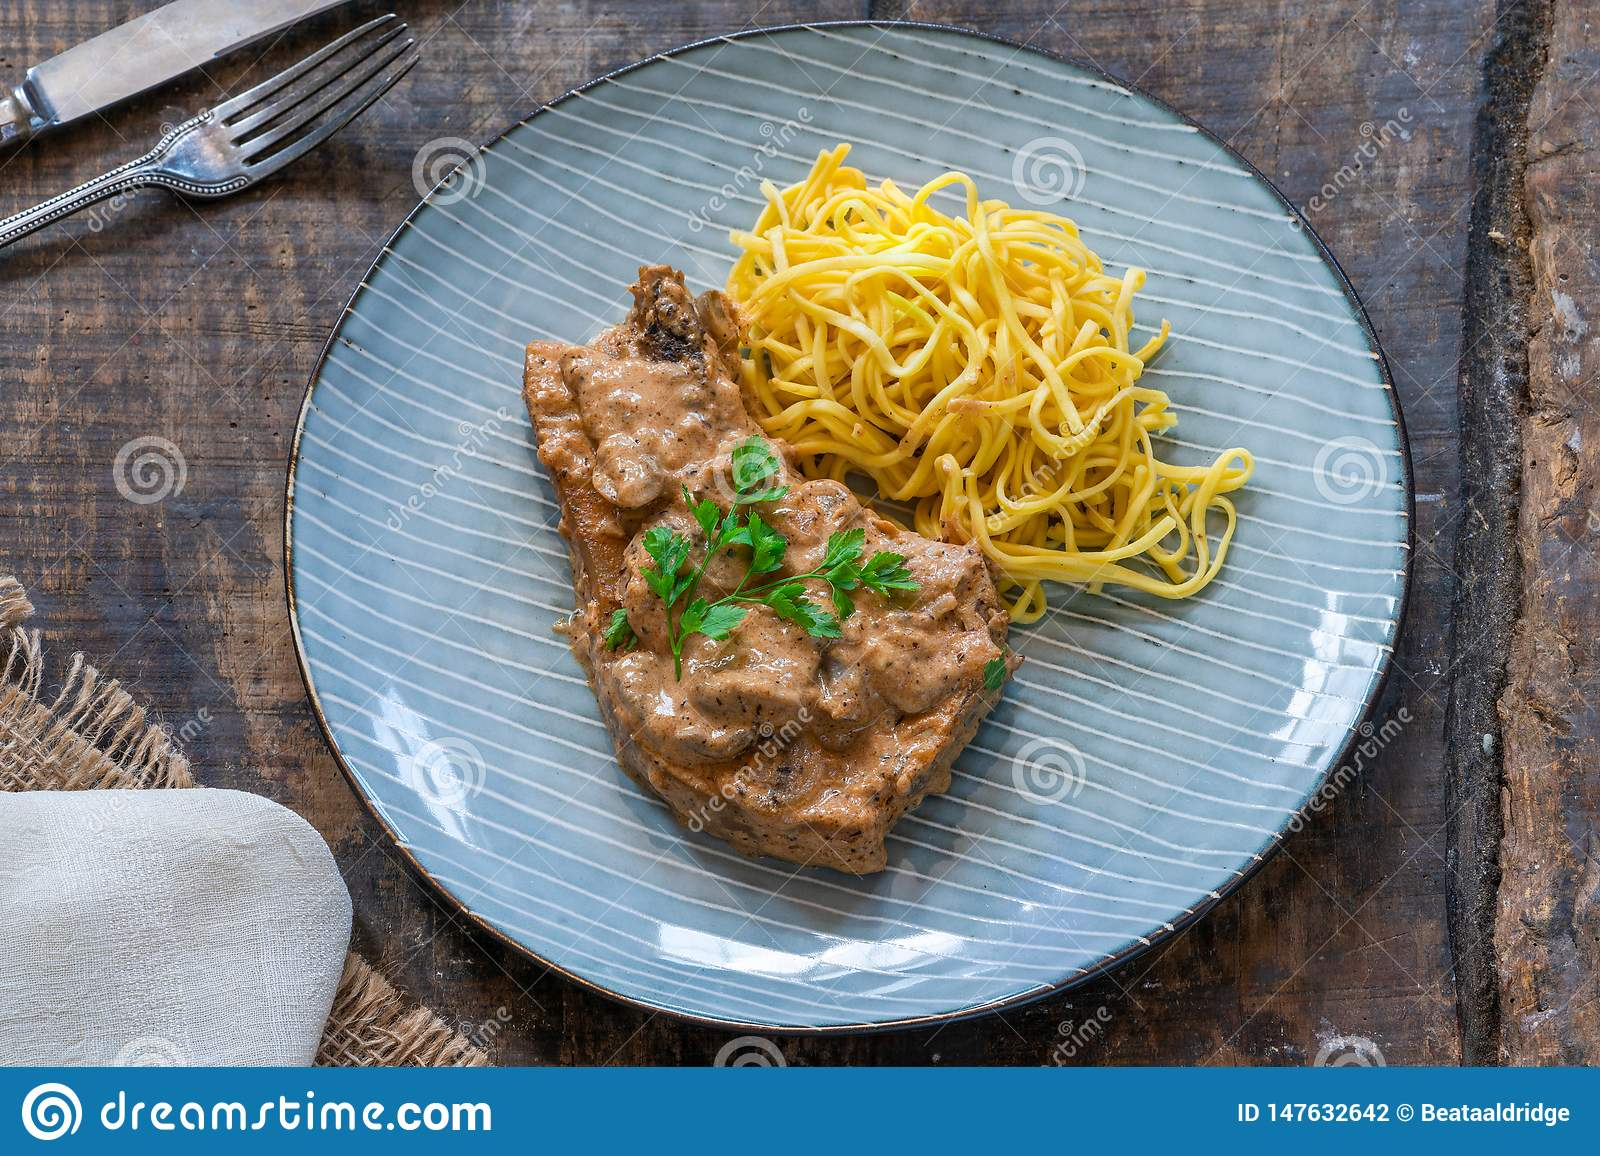 Pork chops in creamy cajun sauce with button mushrooms and egg noodles